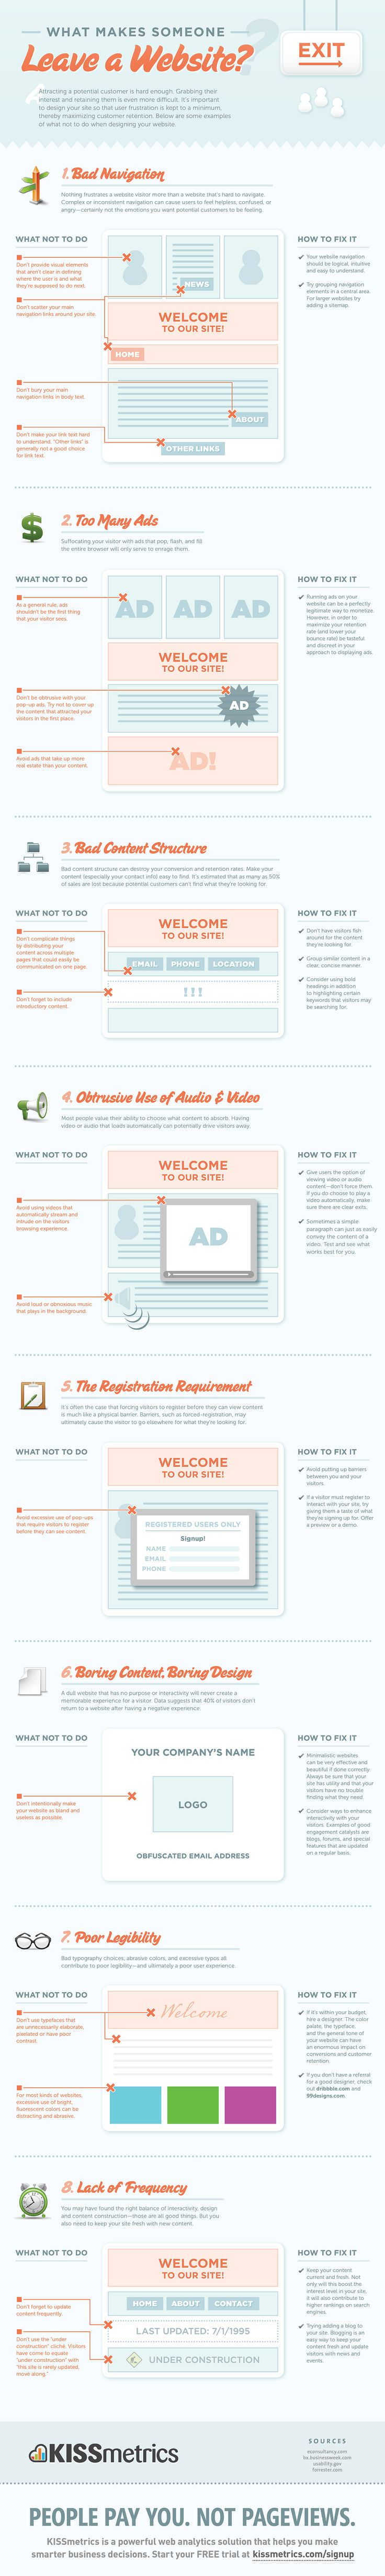 Web design infographic. If you like UX, design, or design thinking, check out theuxblog.com